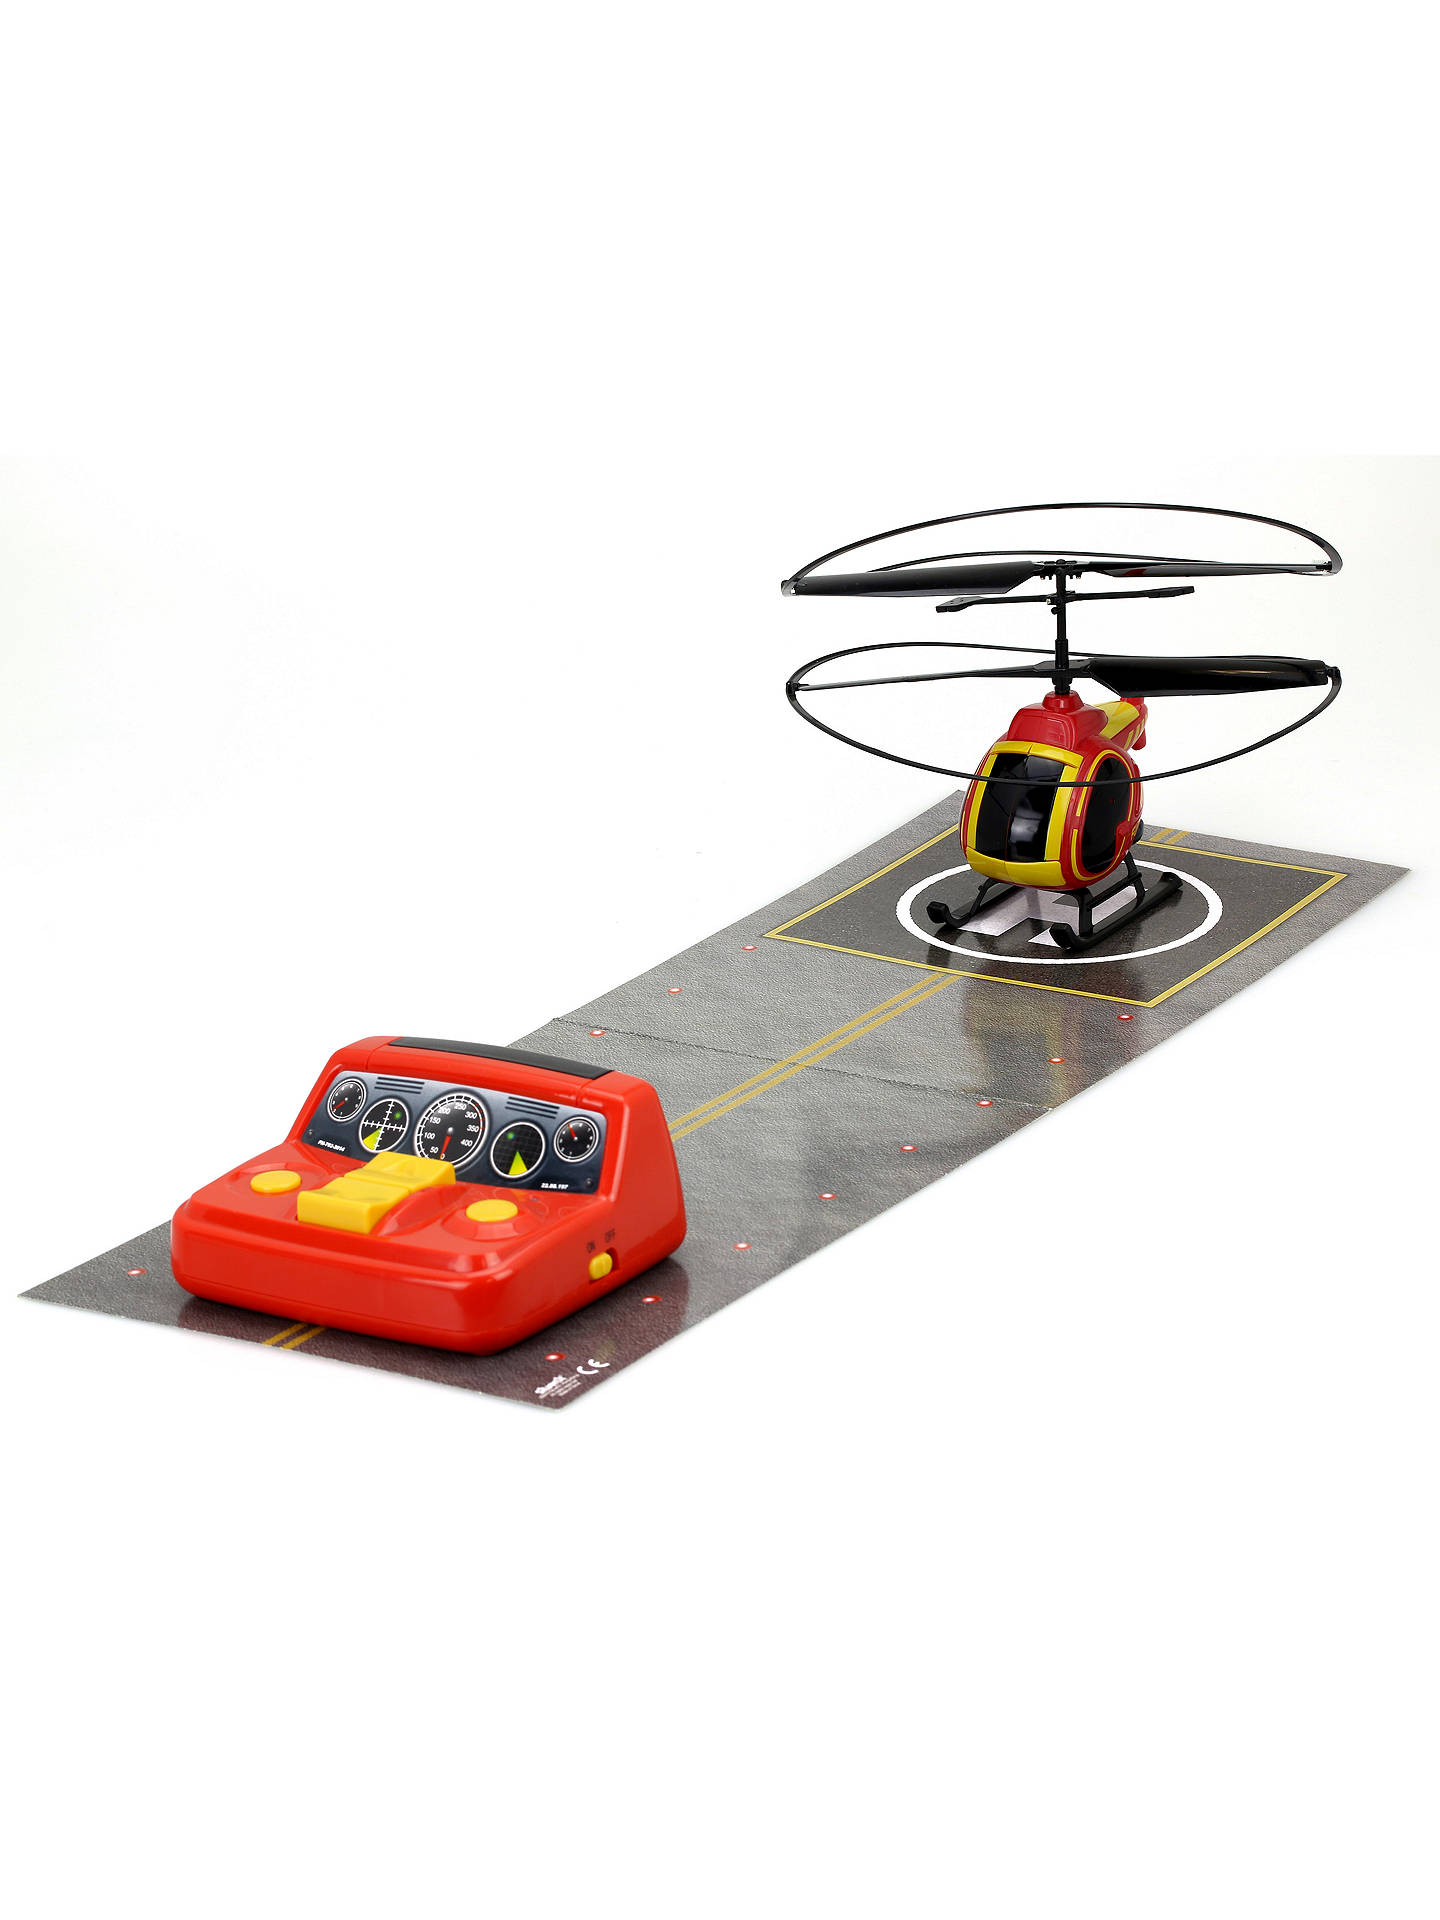 Buy Silverlit My First Remote Control Helicopter Online at johnlewis.com